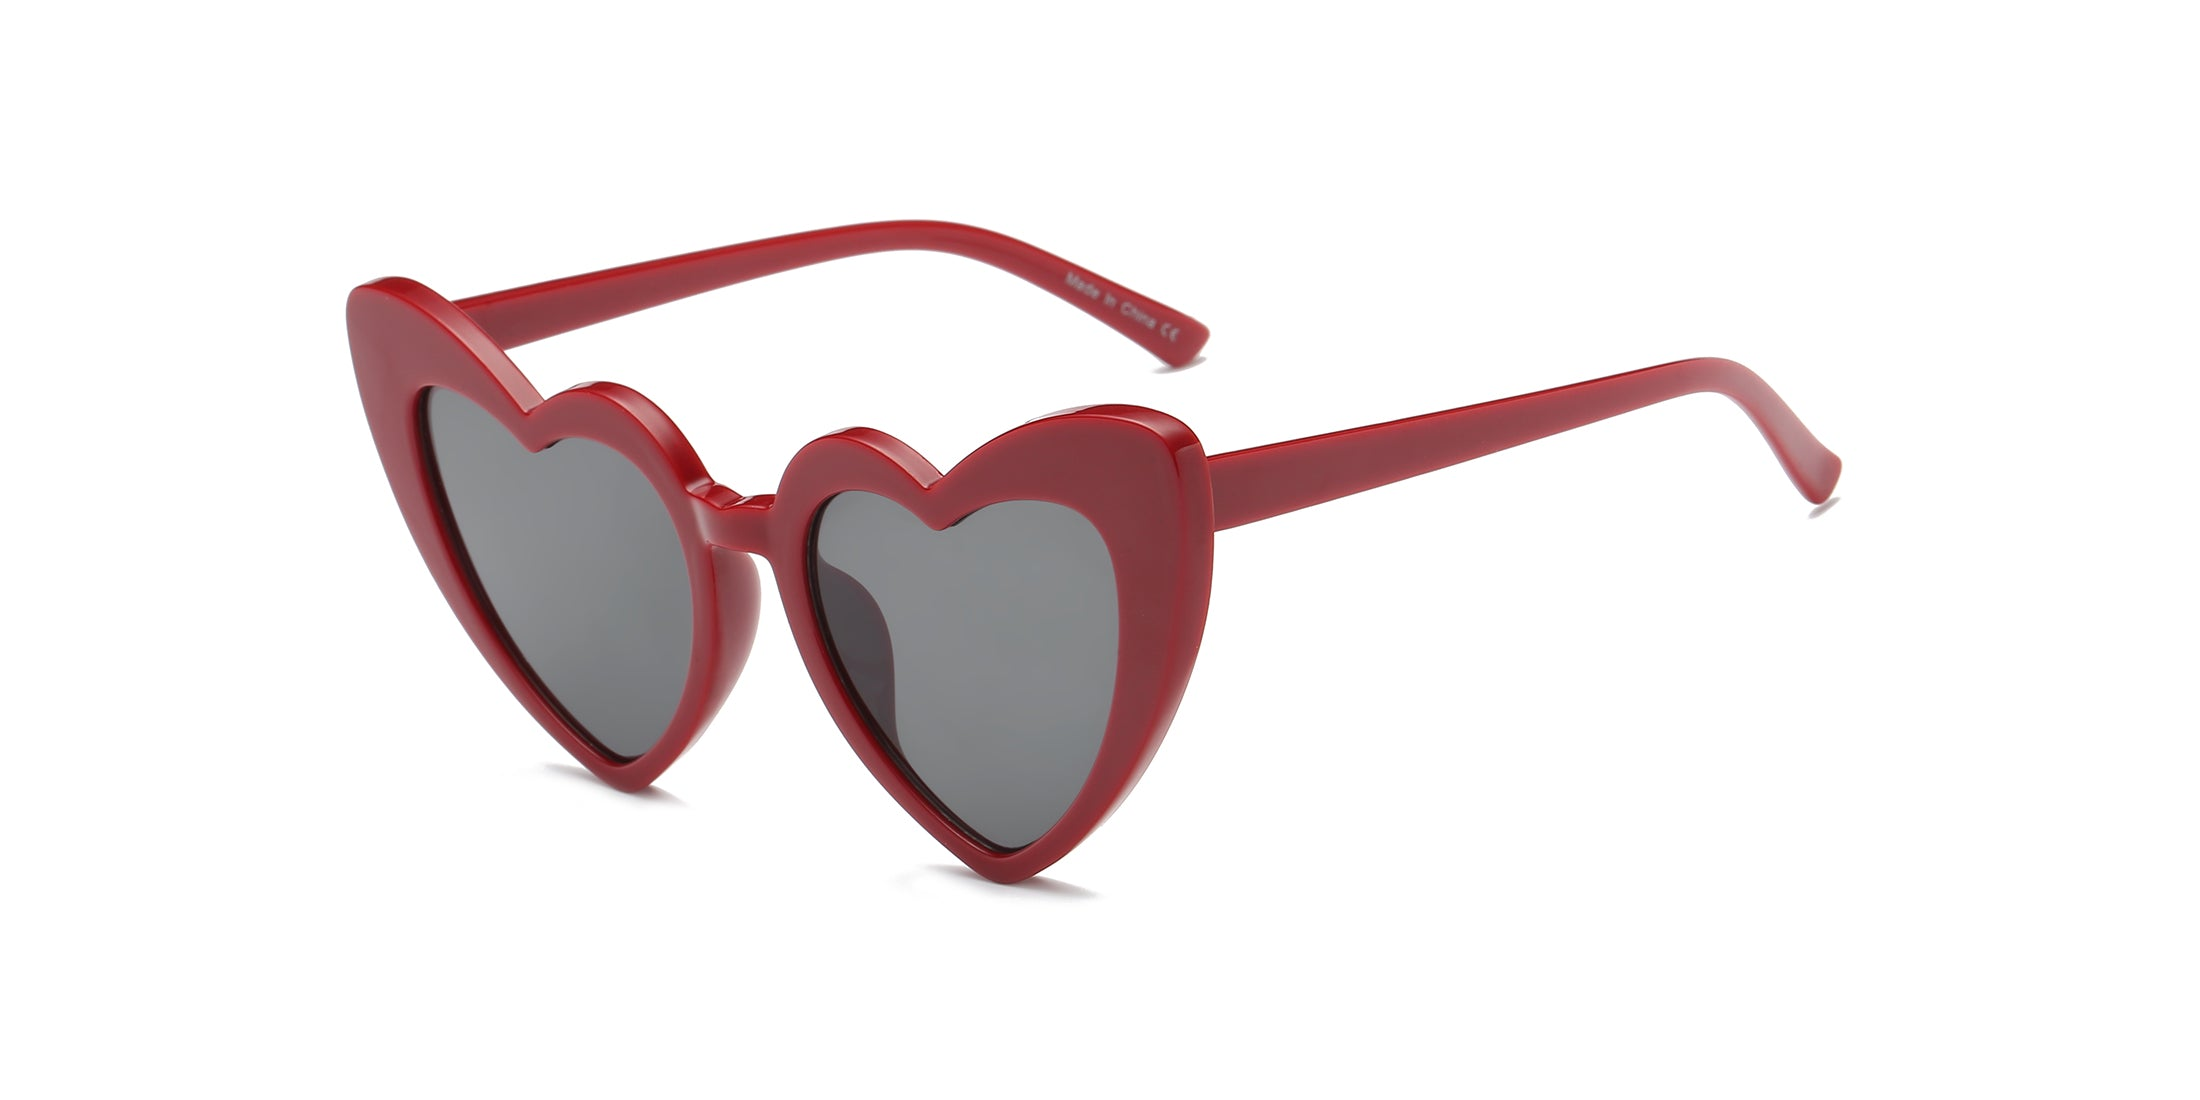 Women Funky Hipster Heart Shape High Pointed Cat Eye Fashion Sunglasses - Maroon